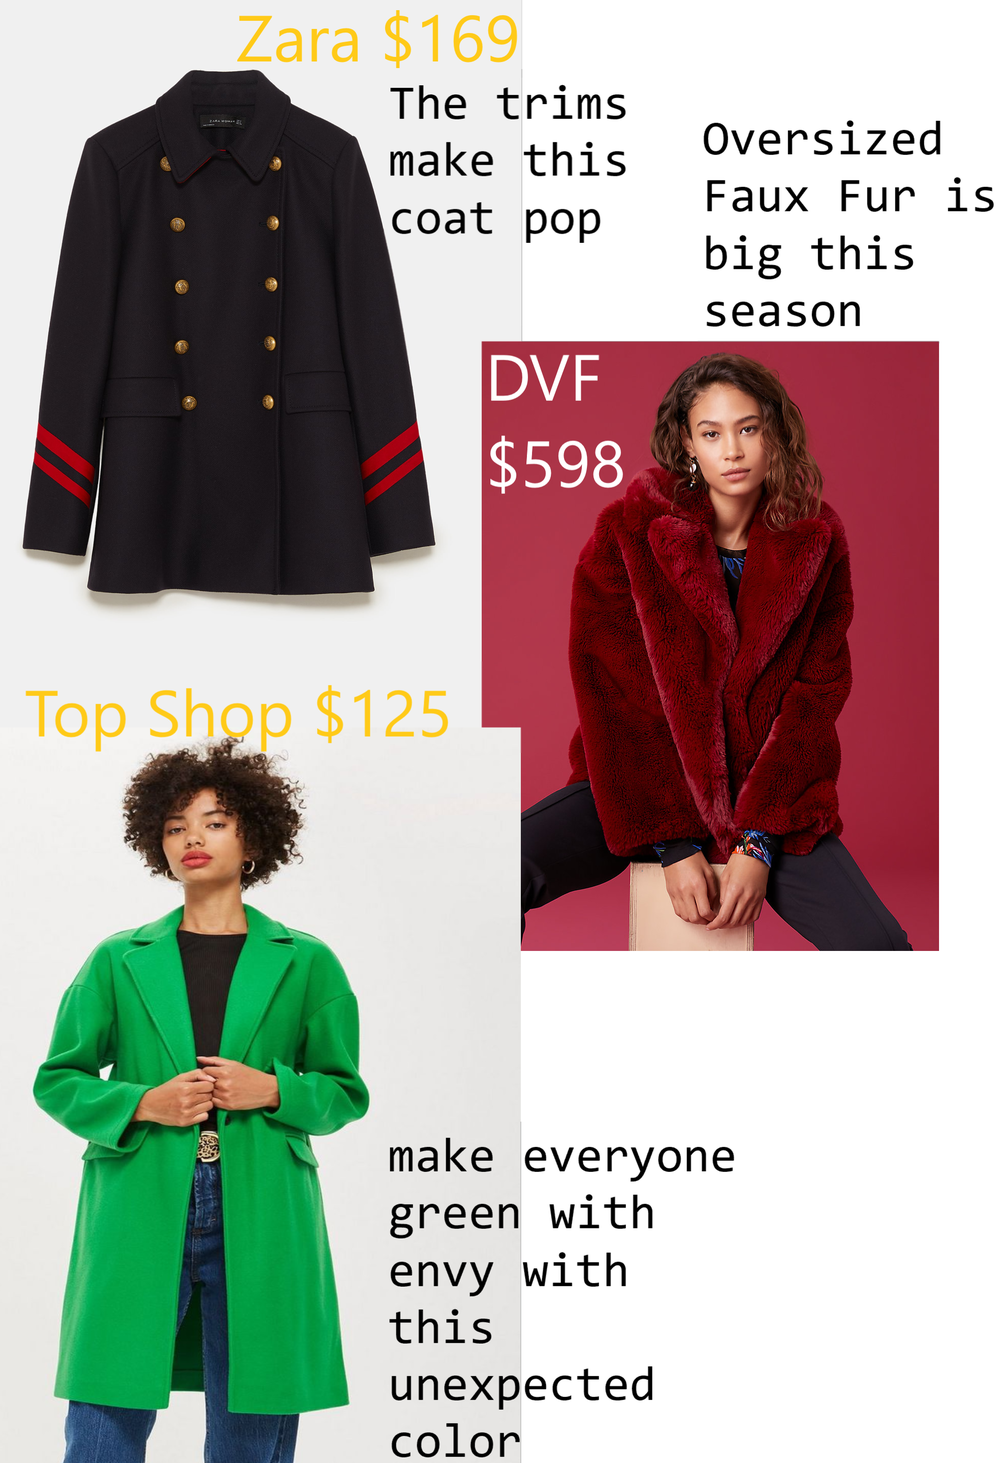 https://www.dvf.com/faux-fur-collared-jacket/12066DVF.html?dwvar_12066DVF_color=RUBY0&dwvar_12066DVF_size=XXS&bcid=clothing-jackets-outerwear    https://www.zara.com/us/en/short-coat-with-stripes-p07817744.html?v1=6645035&v2=1074615    http://us.topshop.com/en/tsus/product/clothing-70483/jackets-coats-2390895/relaxed-coat-7930528